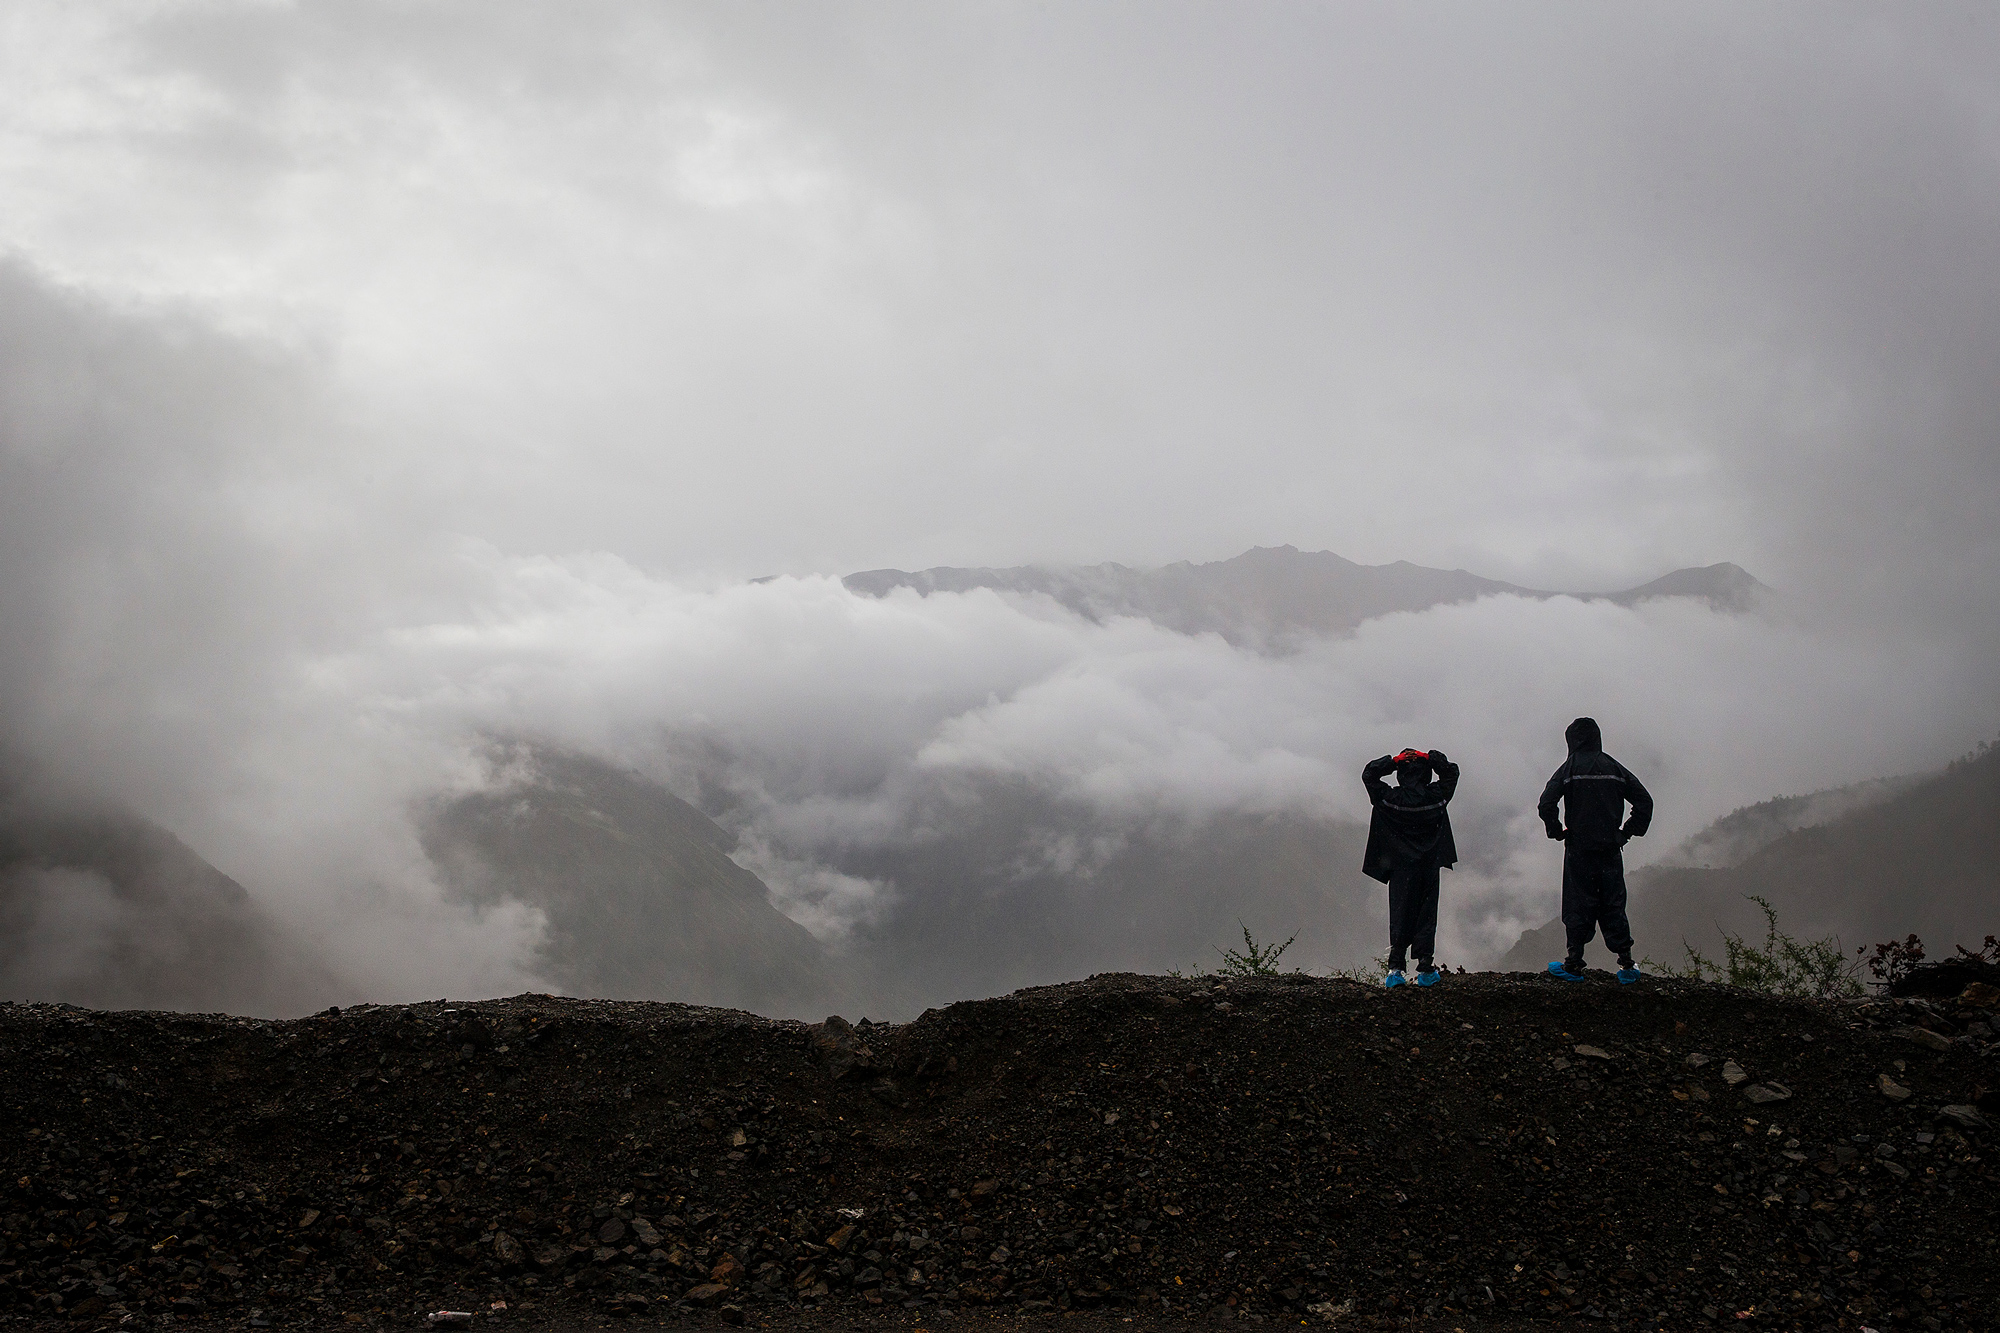 Chao and Runxi enjoy the view of Mount Jueba, July 26.